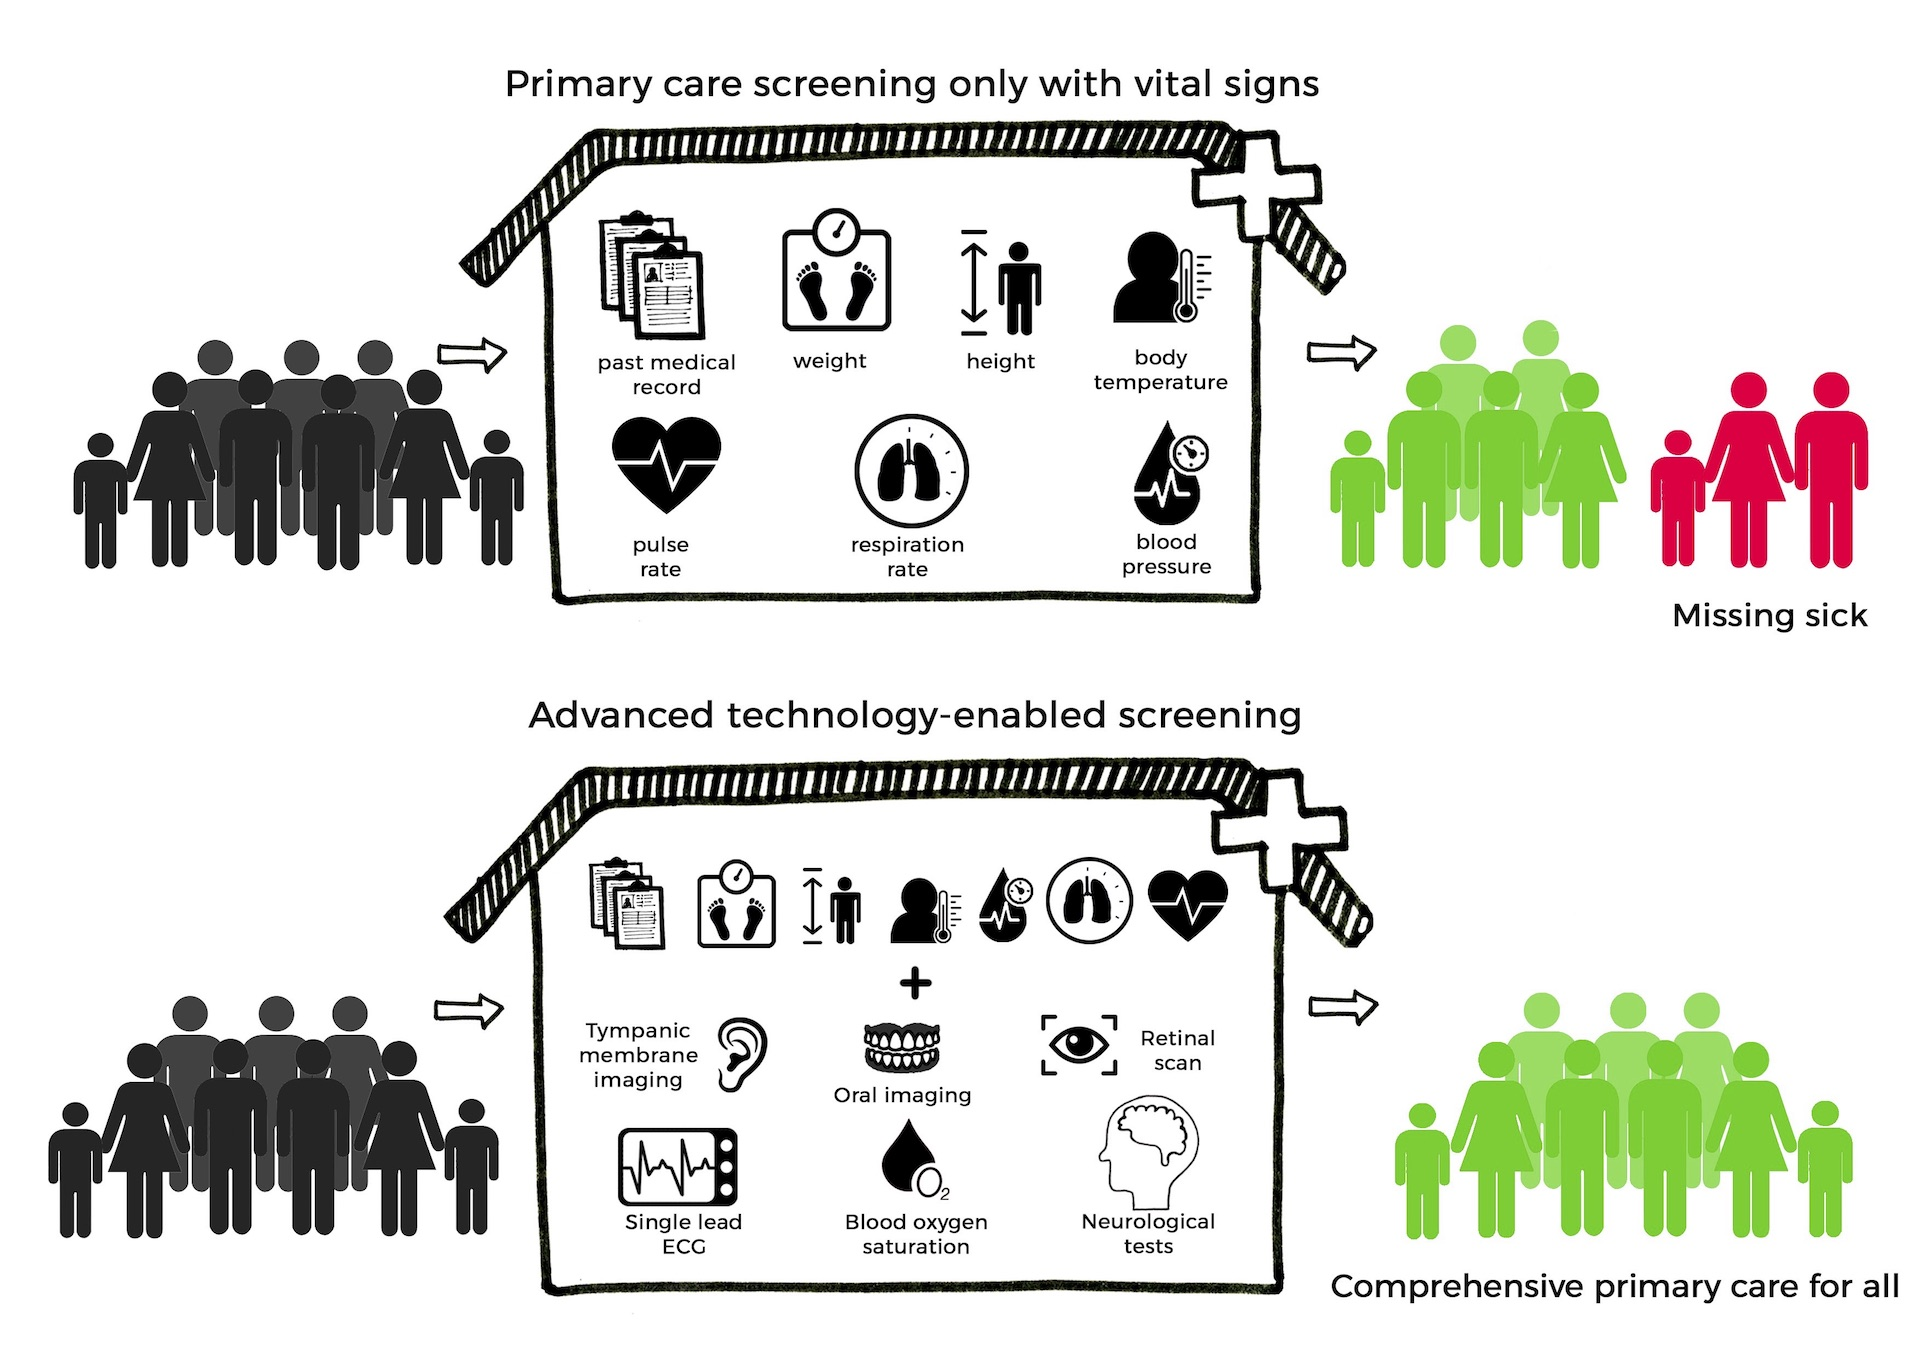 Technology enabled machine learning powered primary care screening systems